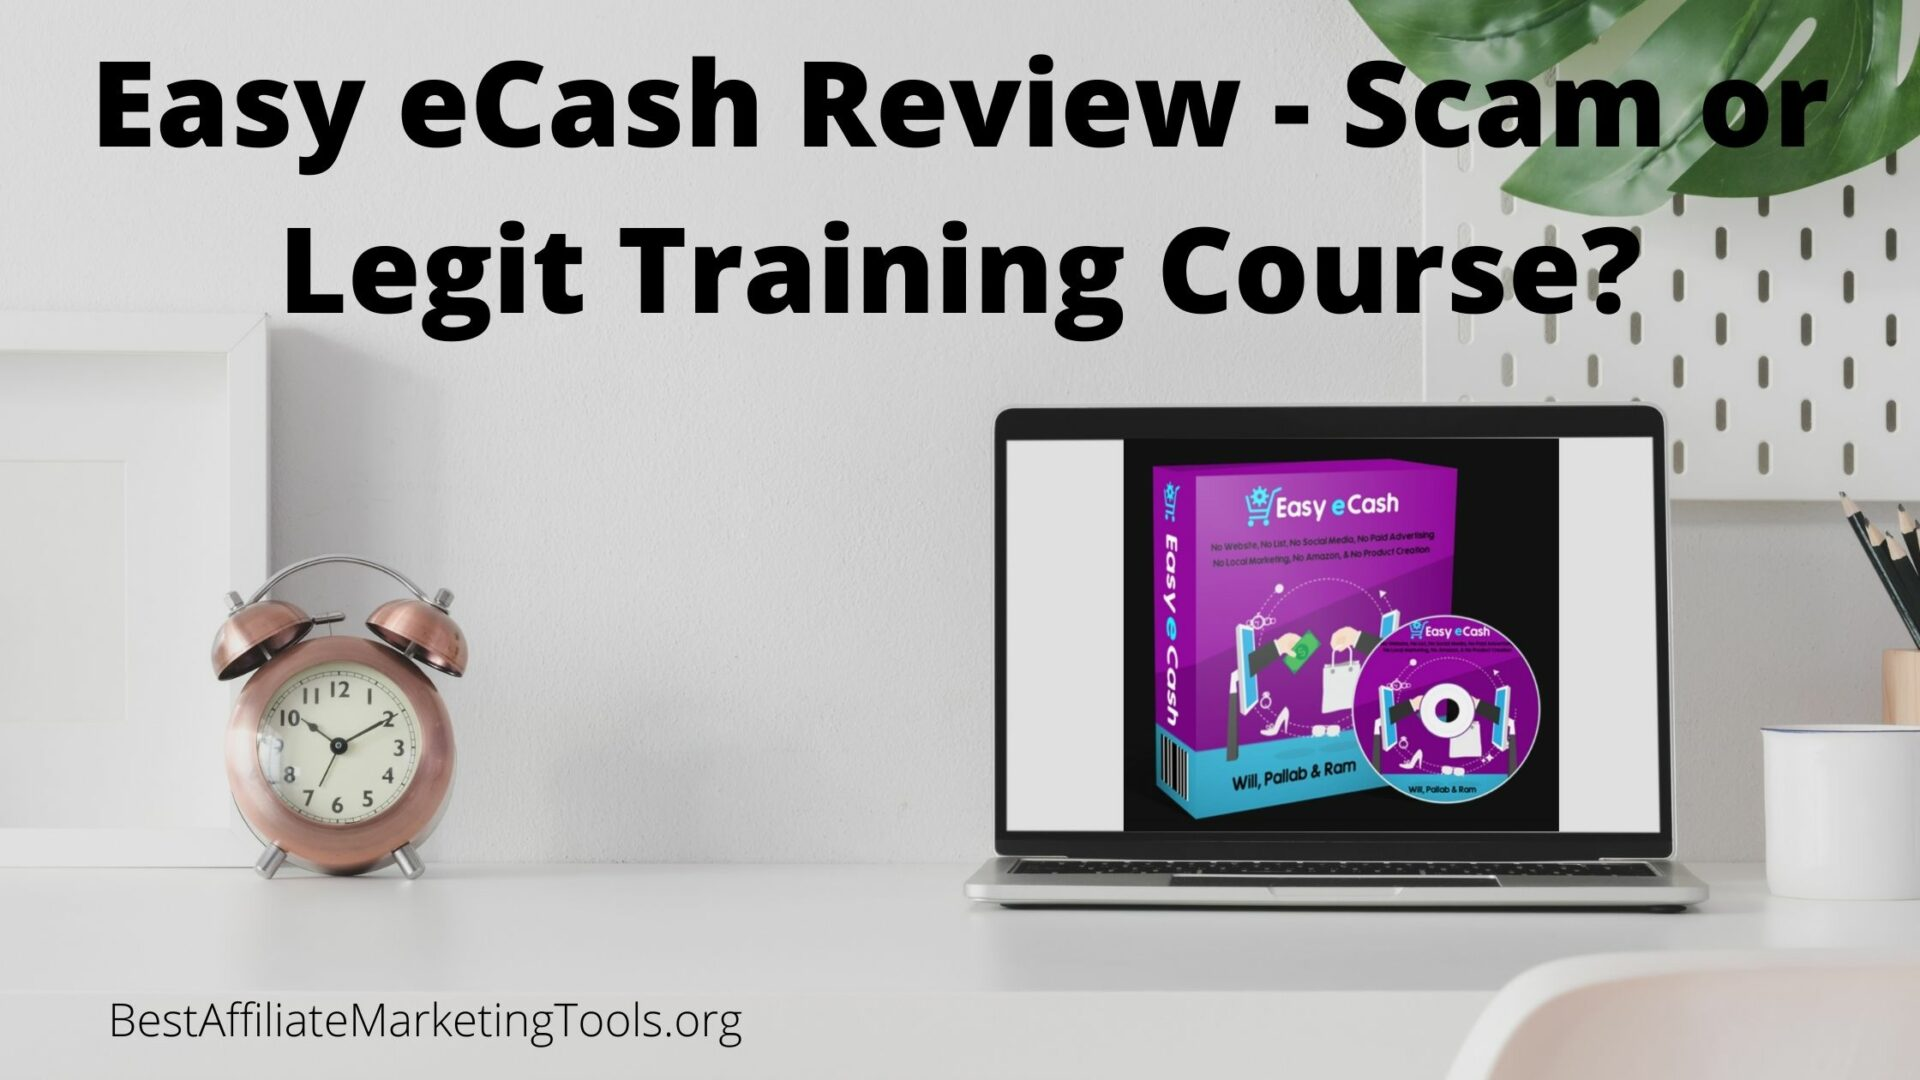 Easy eCash Review